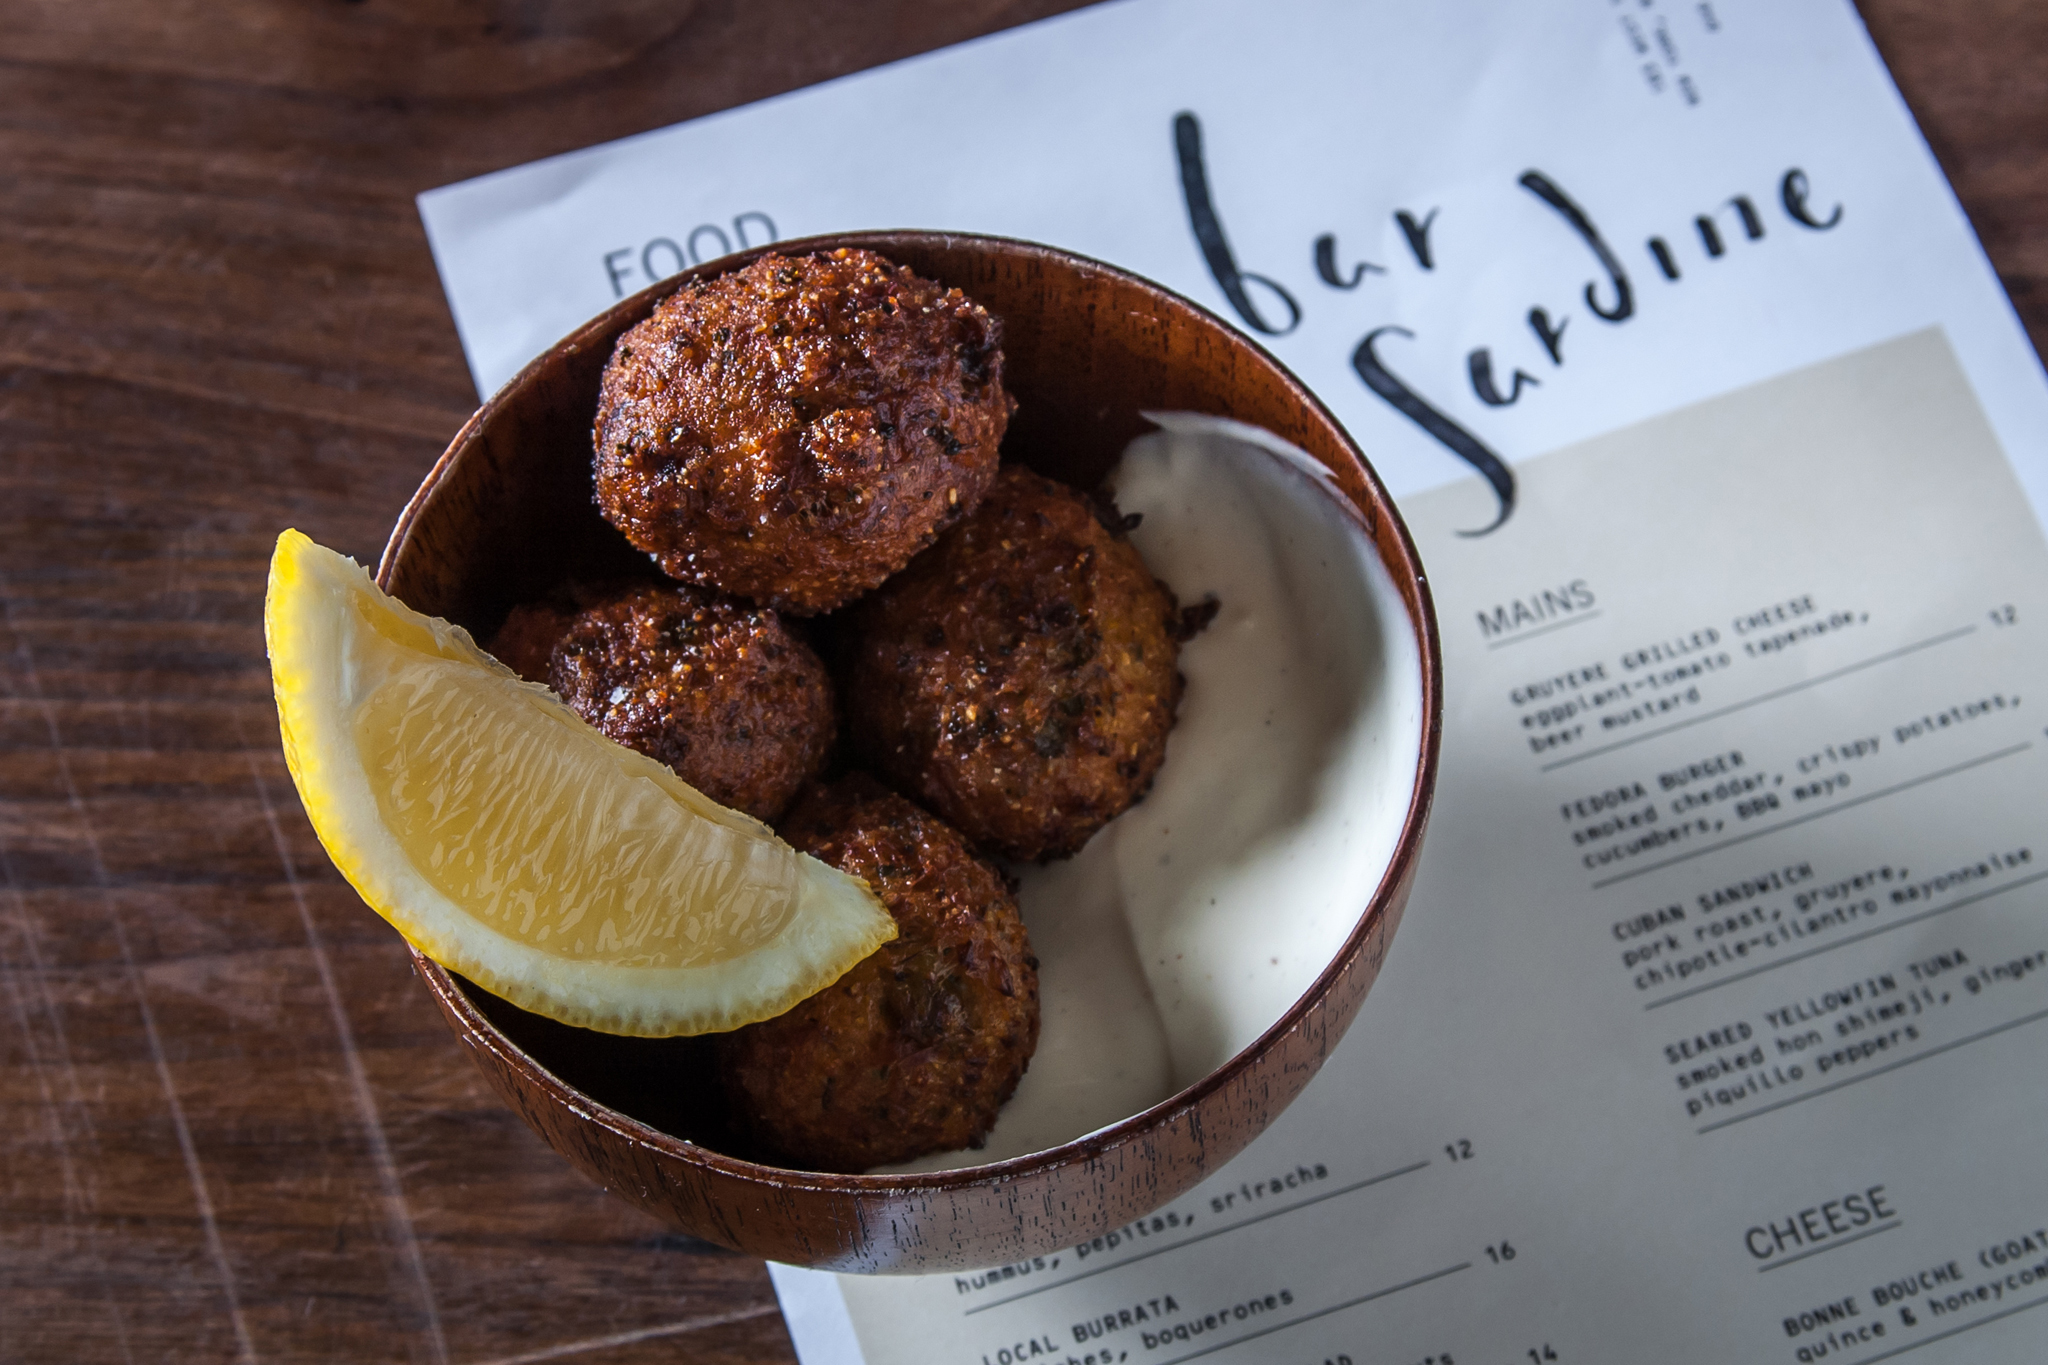 Octopus hush puppies at Bar Sardine